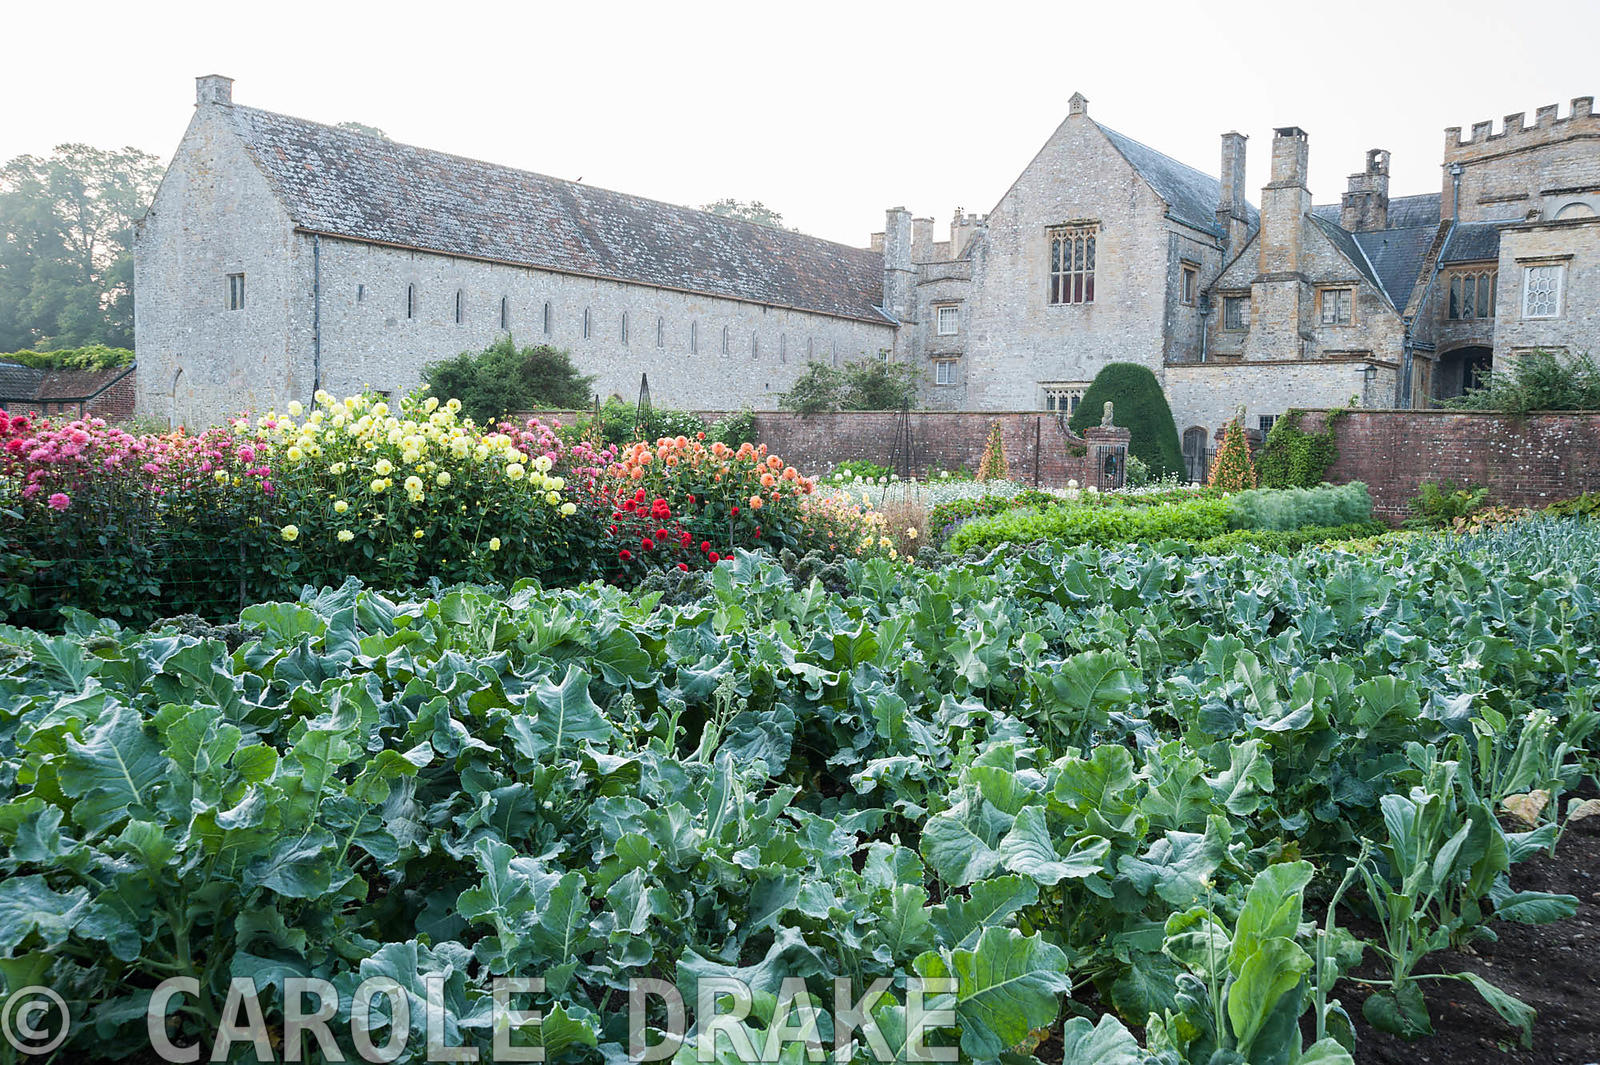 Kitchen garden full of rows of broccoli, cabbages and french beans with backdrop of historic Forde Abbey, nr Chard, Dorset, UK